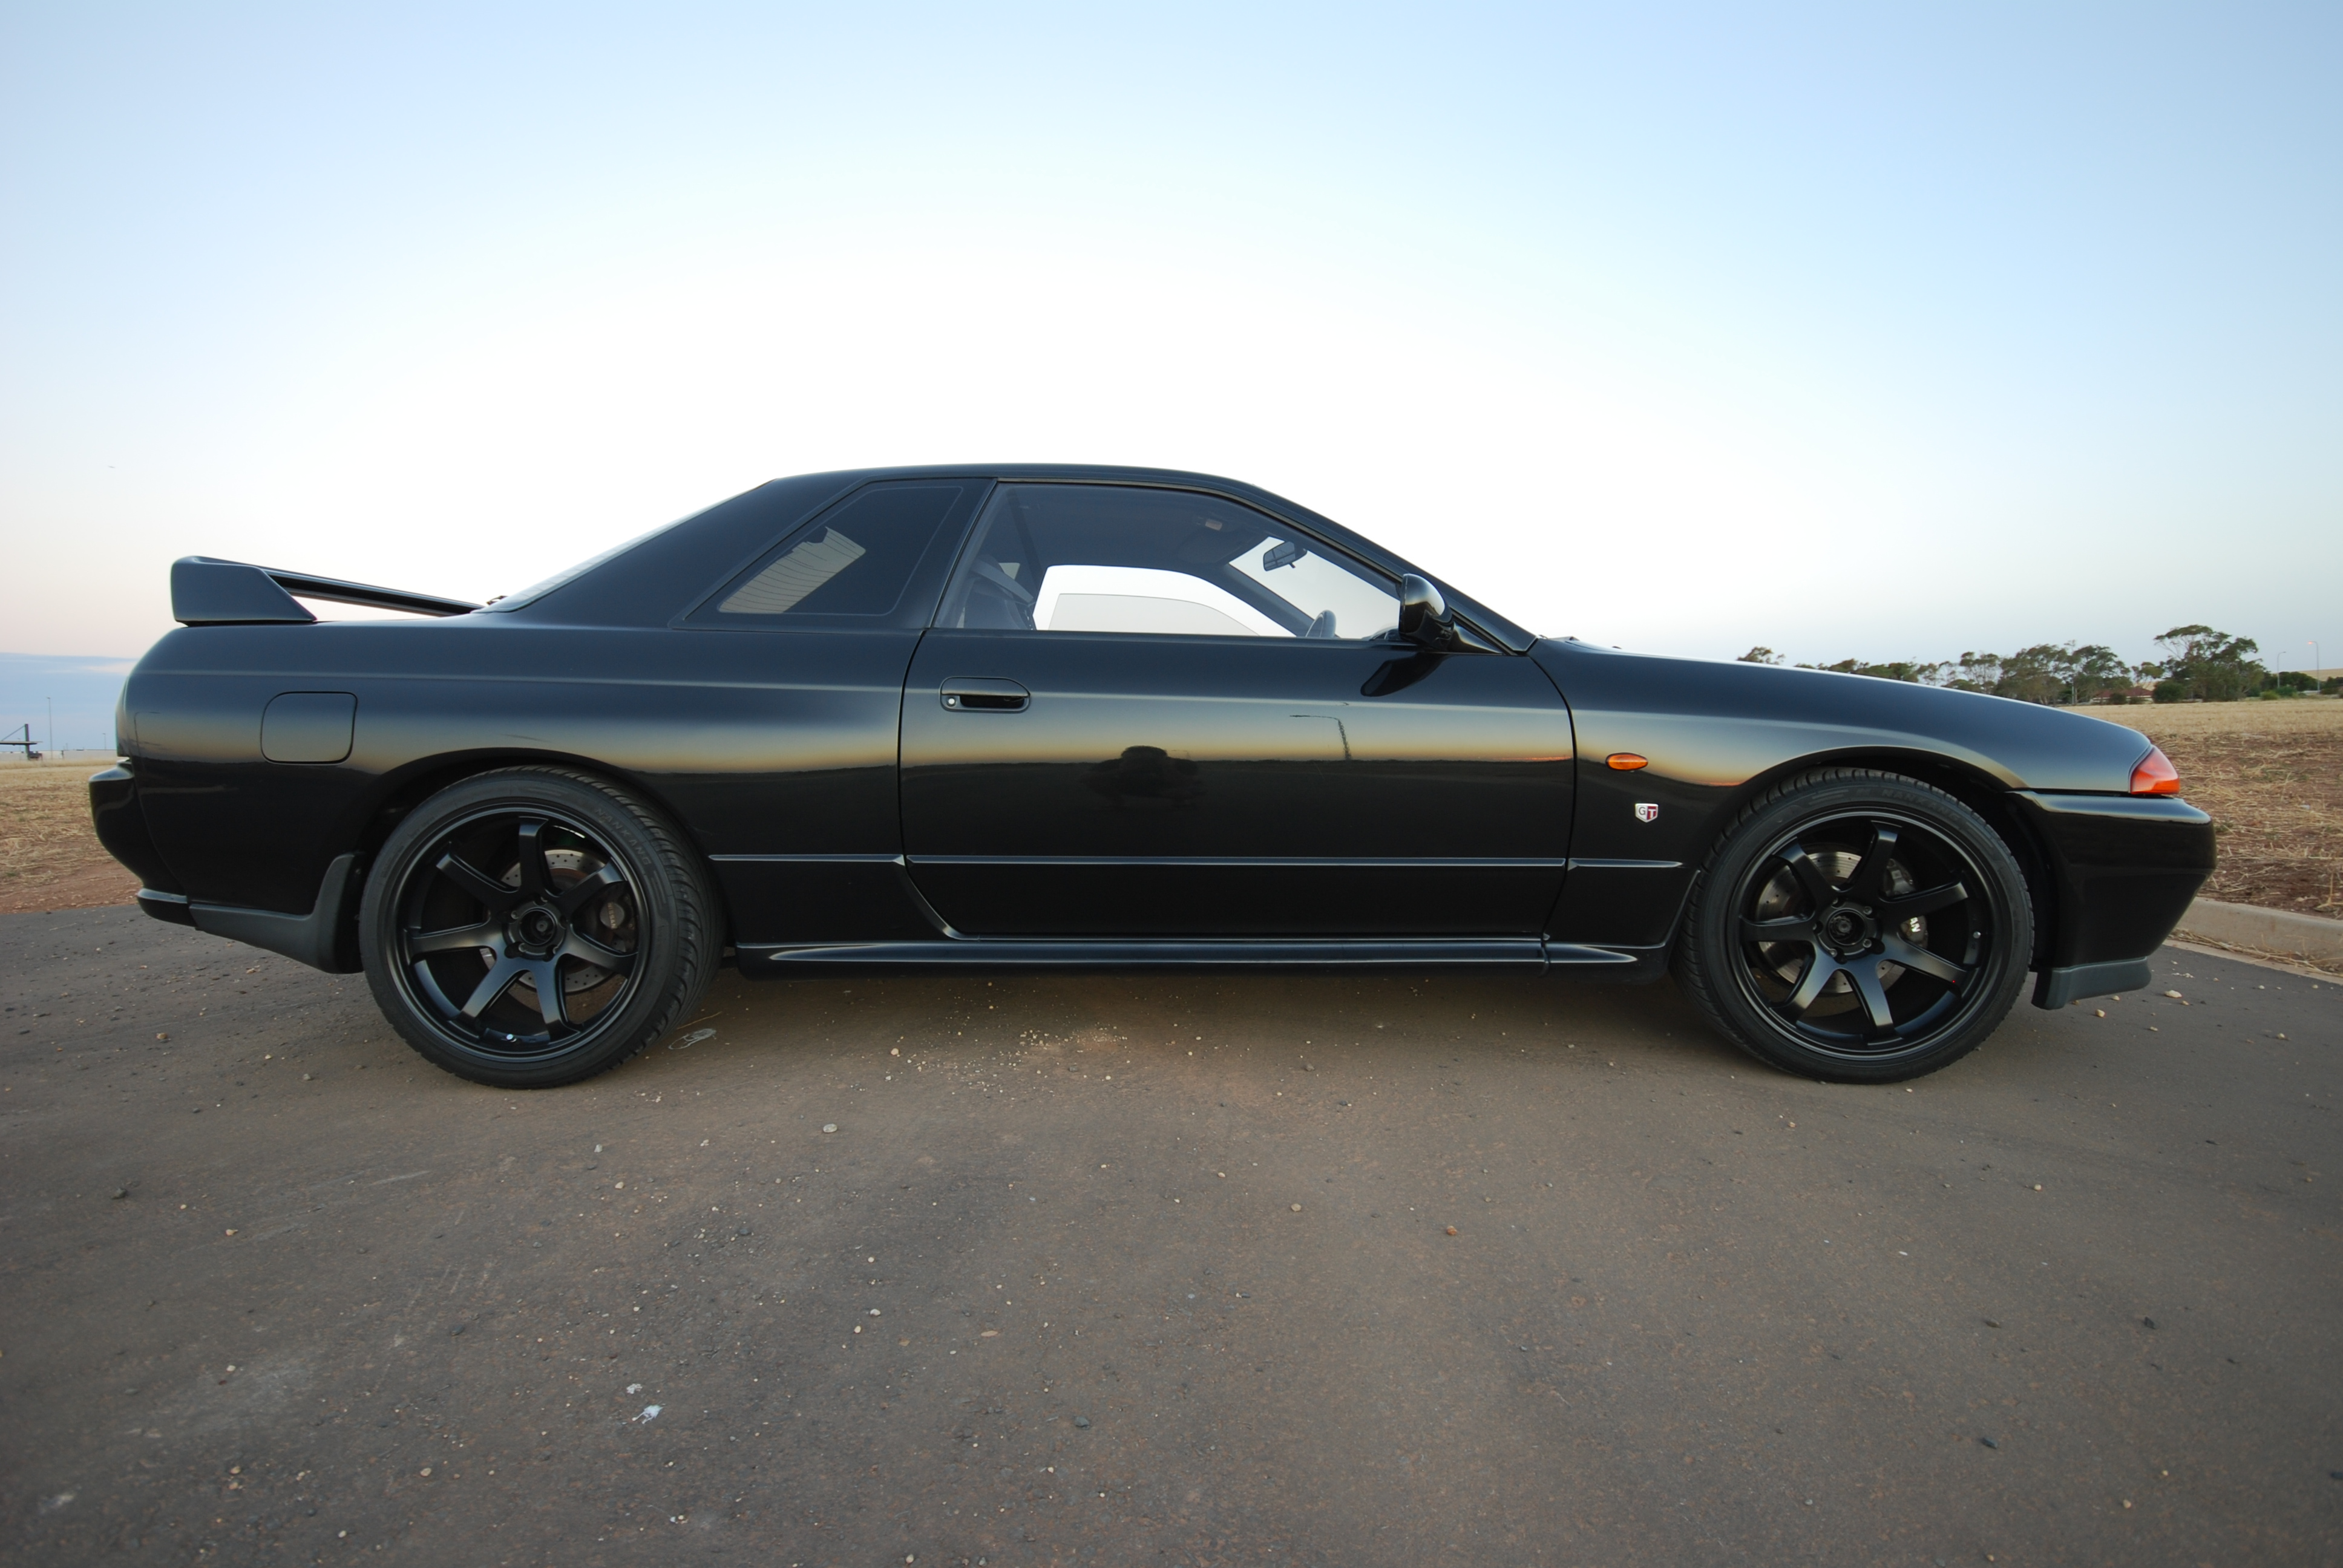 2009 Nissan Gtr For Sale >> Black R32 Gtr 1992 For Sale - For Sale (Private Whole cars ...